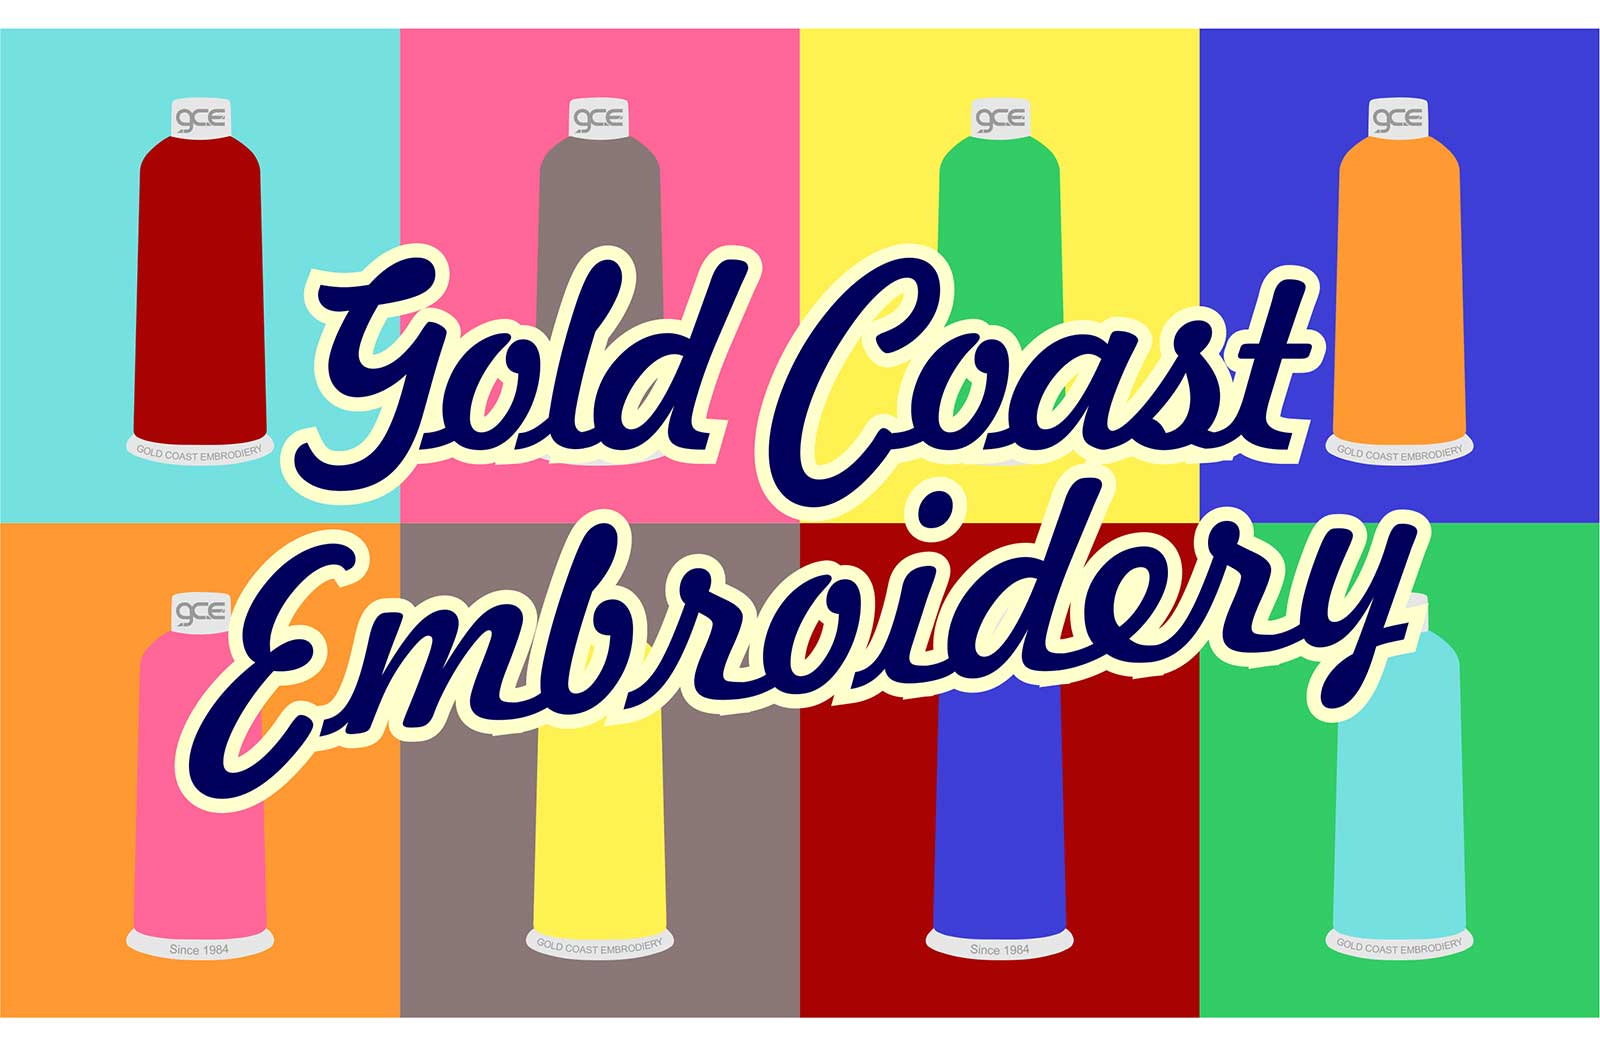 Gold Coast Embroidery